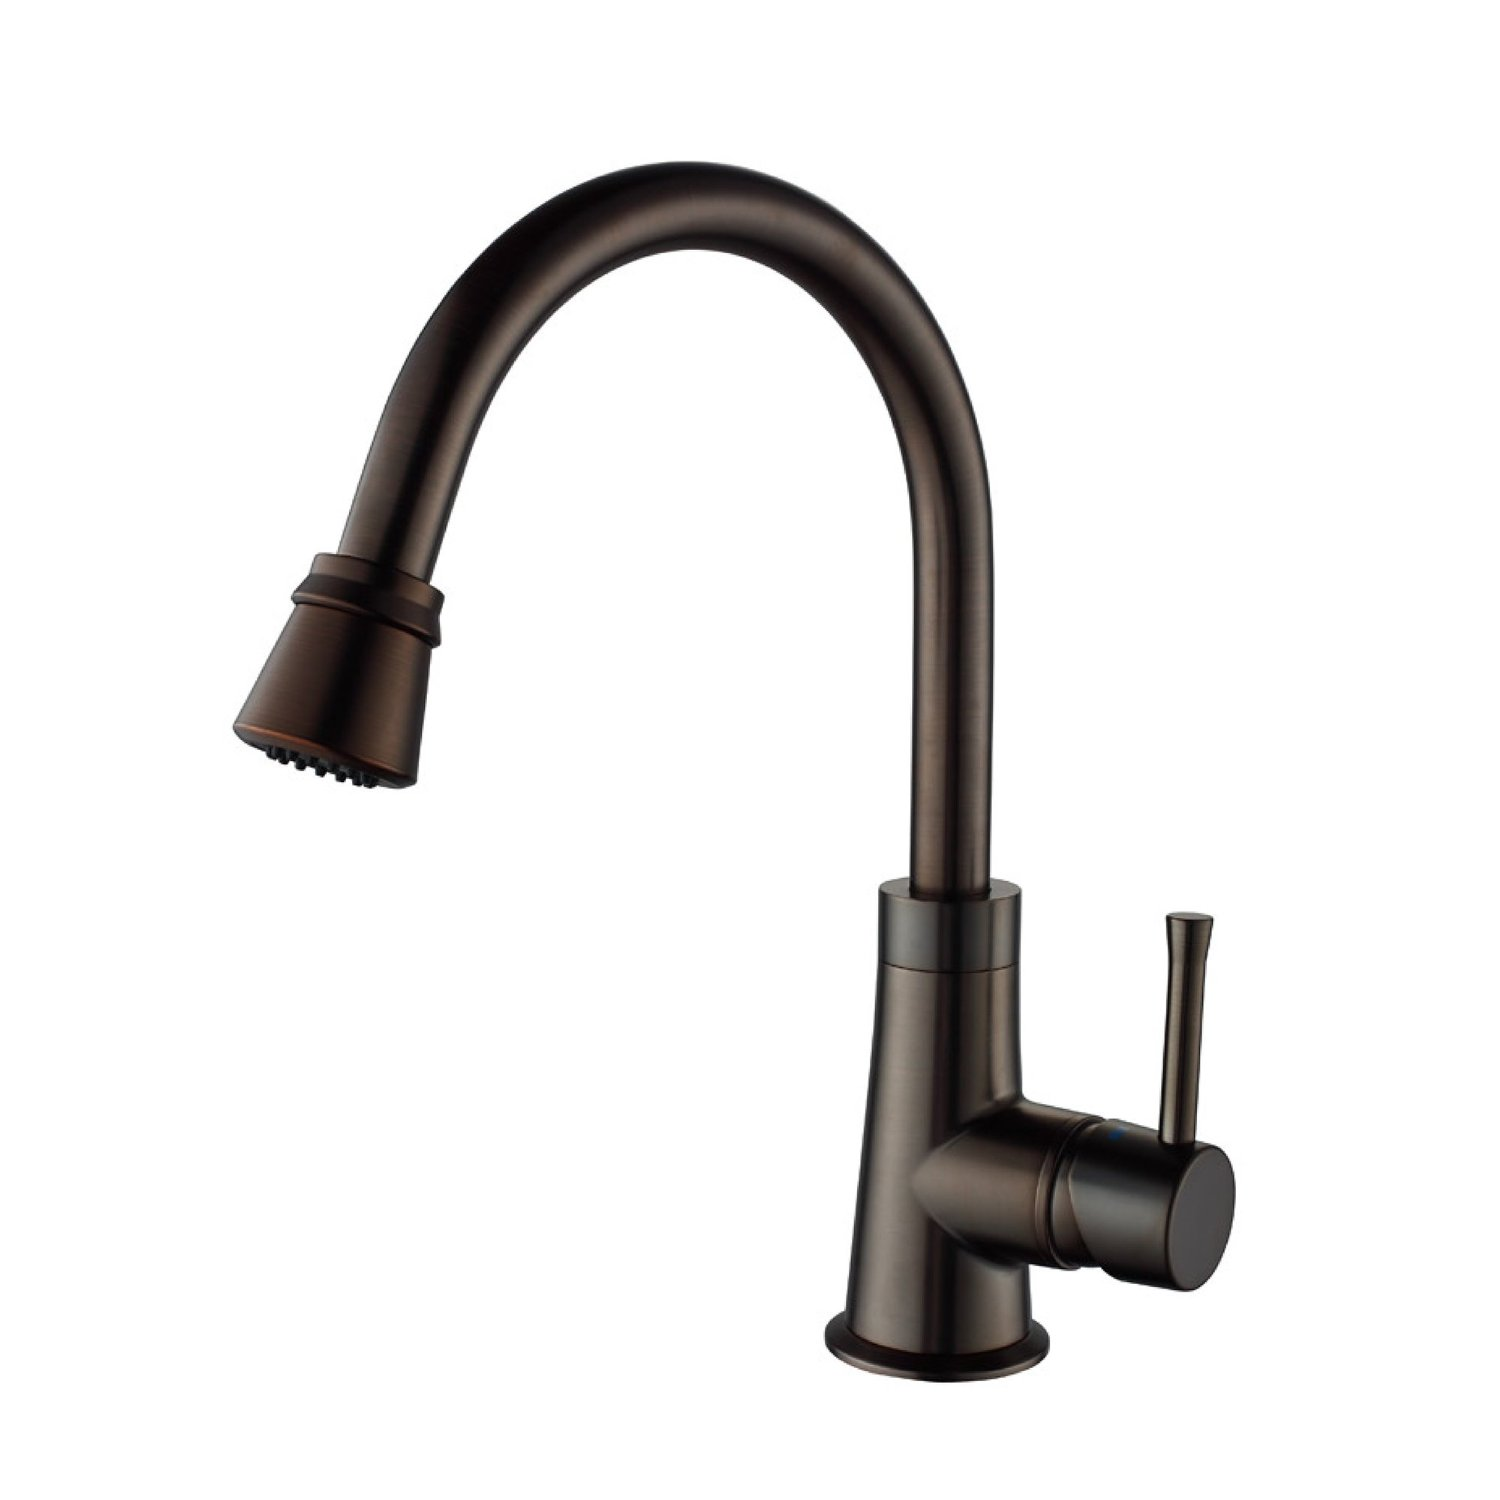 Most Reliable Kitchen Faucets Kraus Faucet Reviews Top Faucets Reviewed